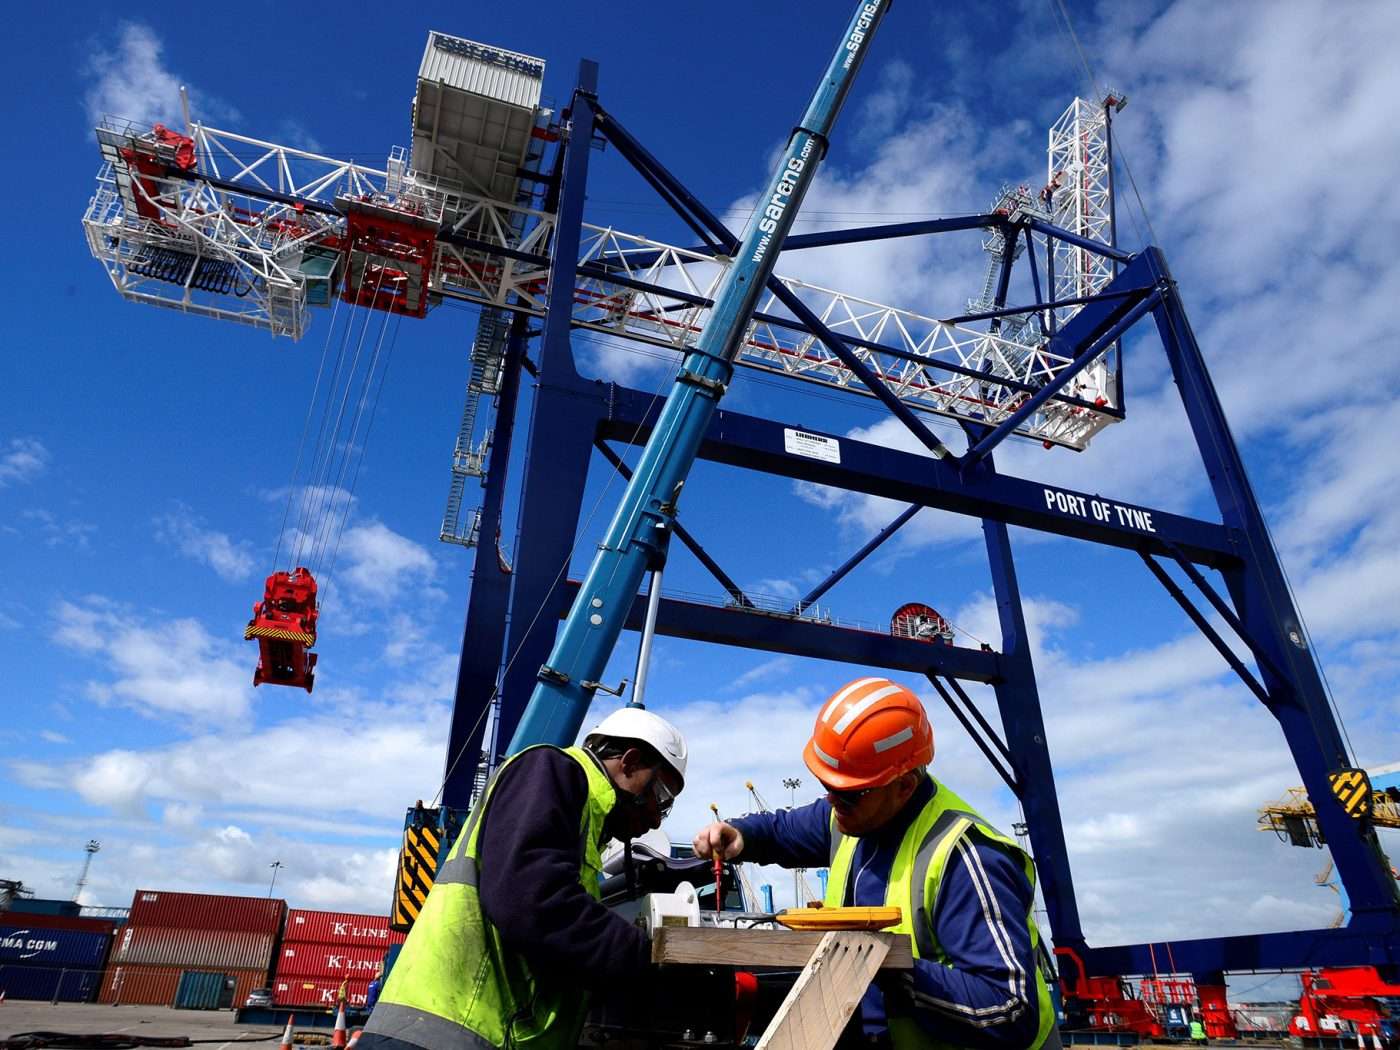 Workers and a crane at the Port of Tyne